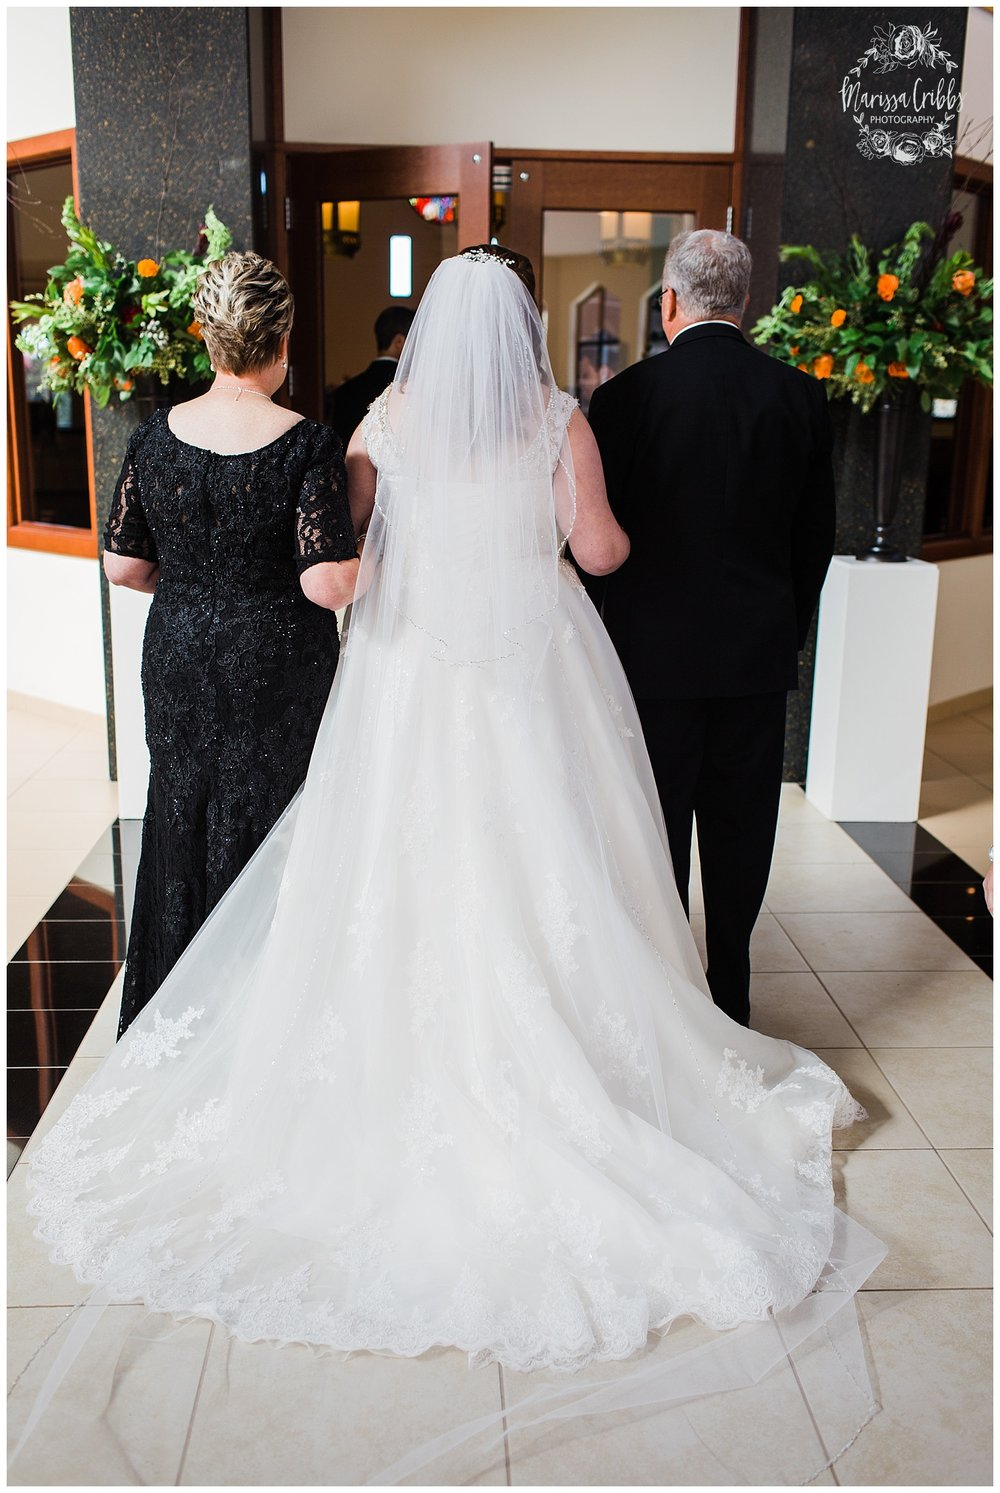 KELLY WEDDING | VENUE AT WILLOW CREEK | MARISSA CRIBBS PHOTOGRAPHY_3695.jpg